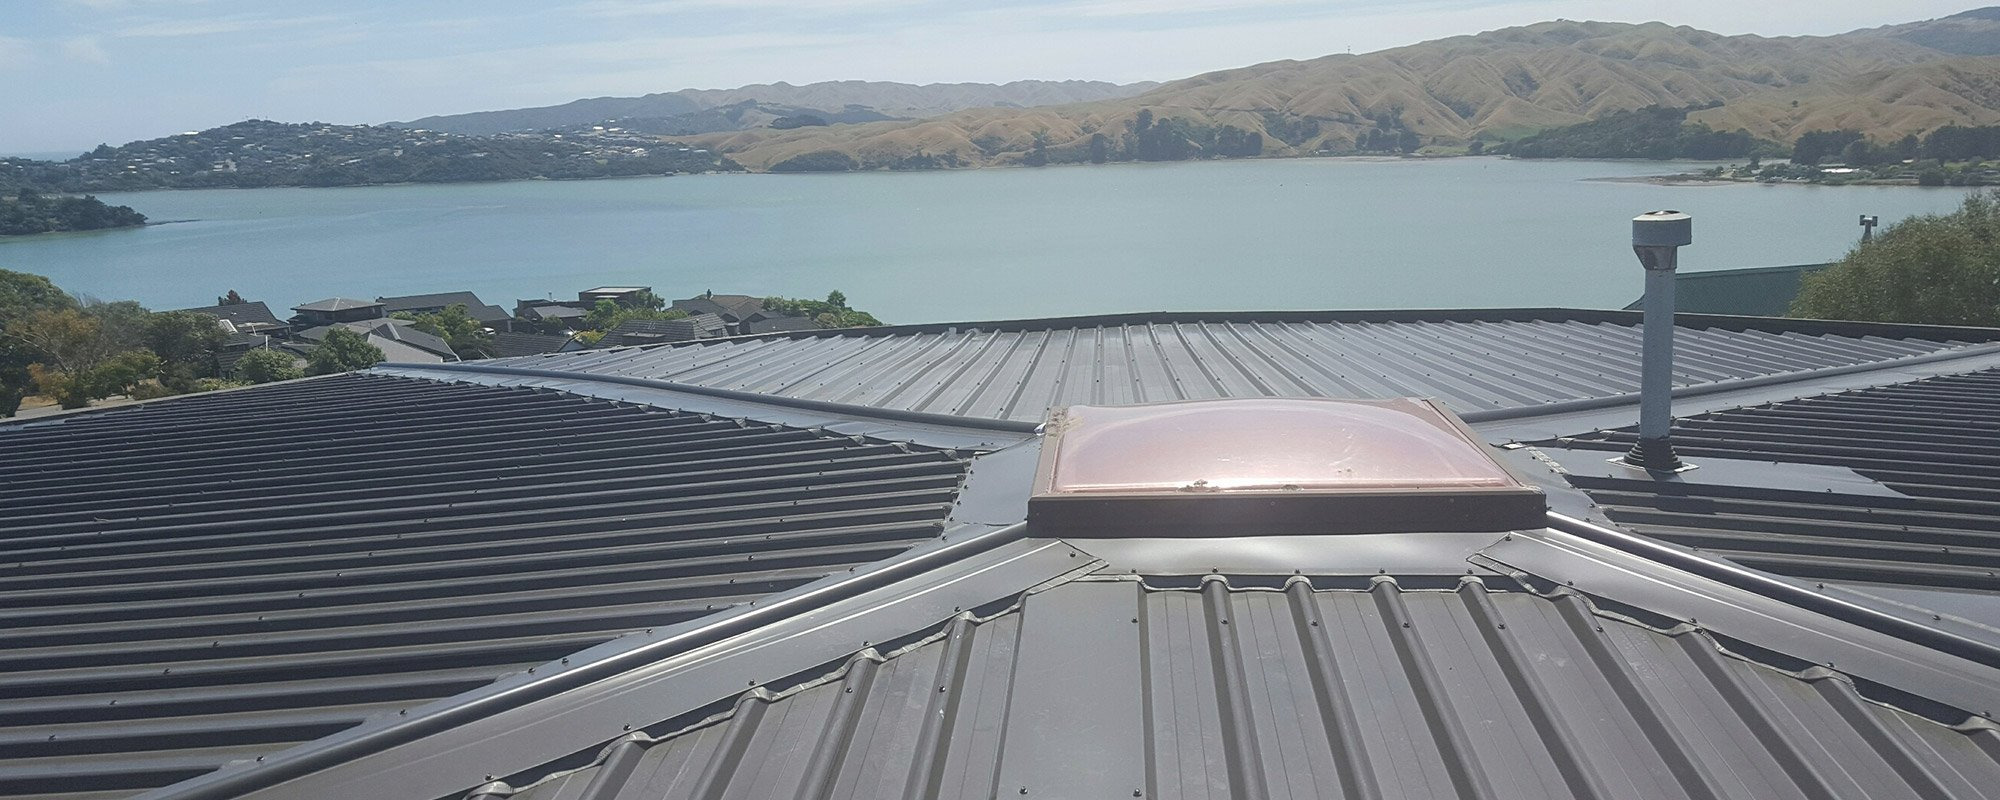 View of a quality roofing work